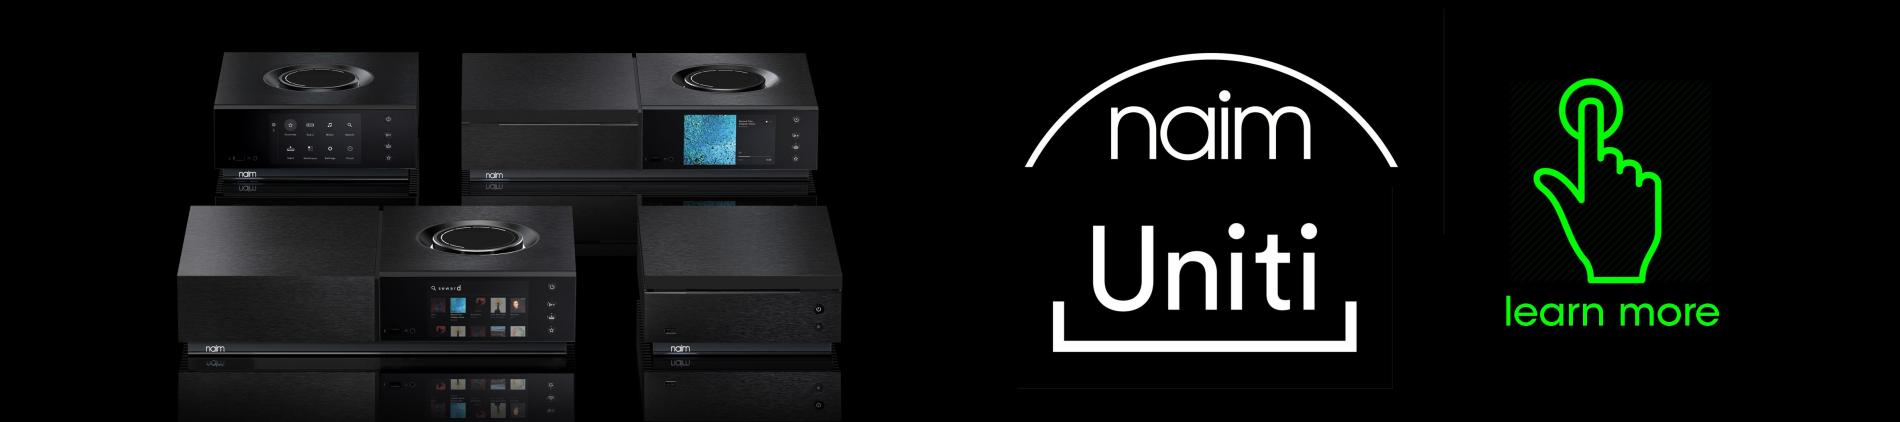 Naim Audios new UNITI Range of electronics offers state-of-the-art music streaming platforms, the latest DACs, and advanced amplification to take your listening experience to the next level.